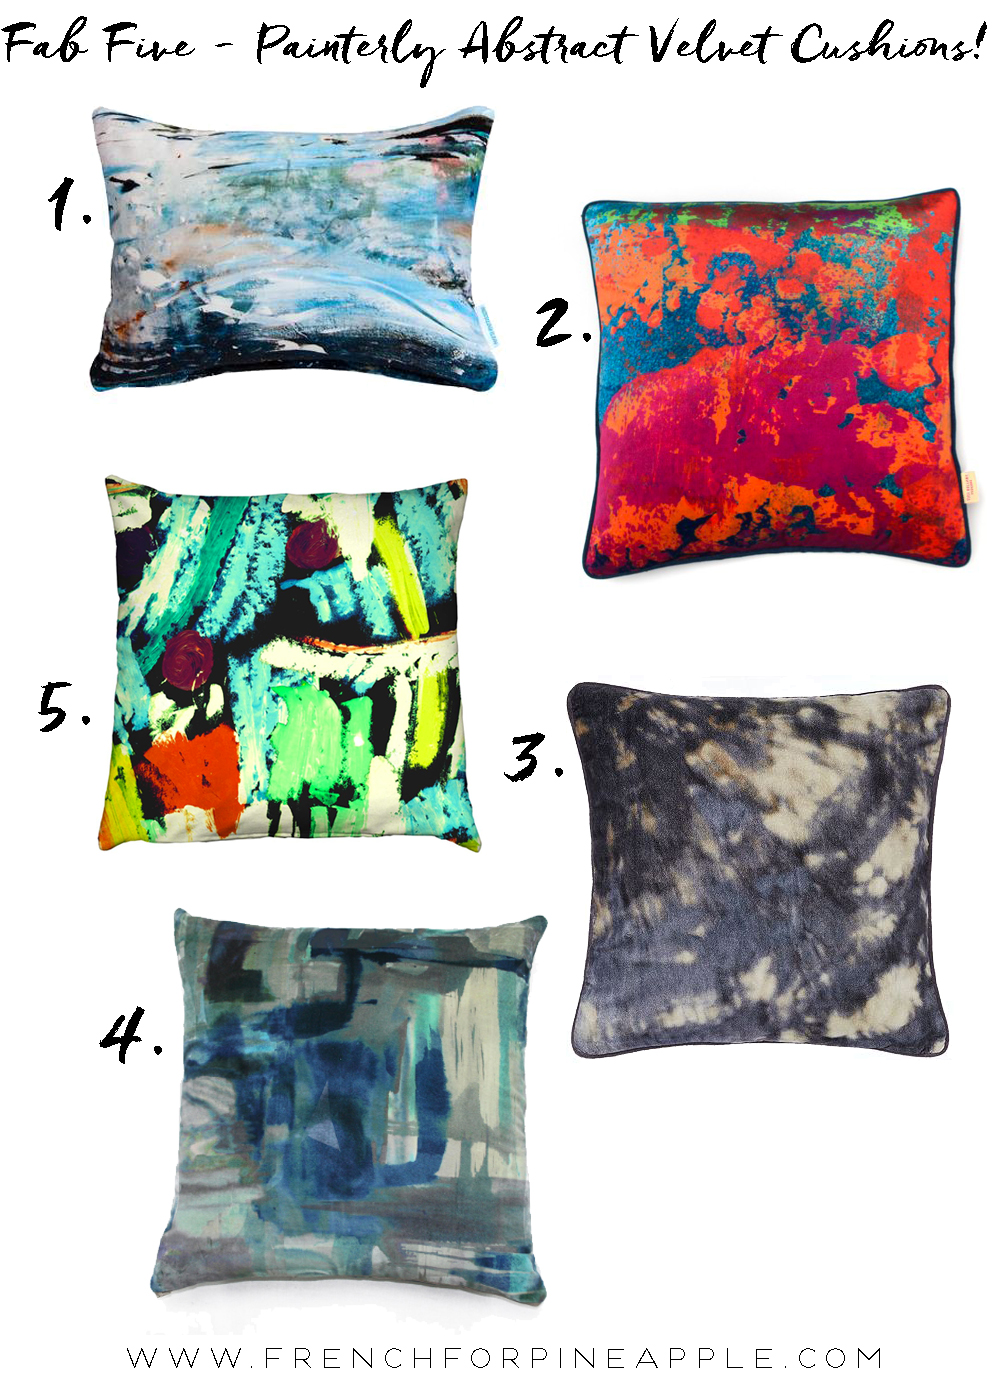 French For Pineapple Blog - Fab Five Painterly Abstract Velvet Cushions